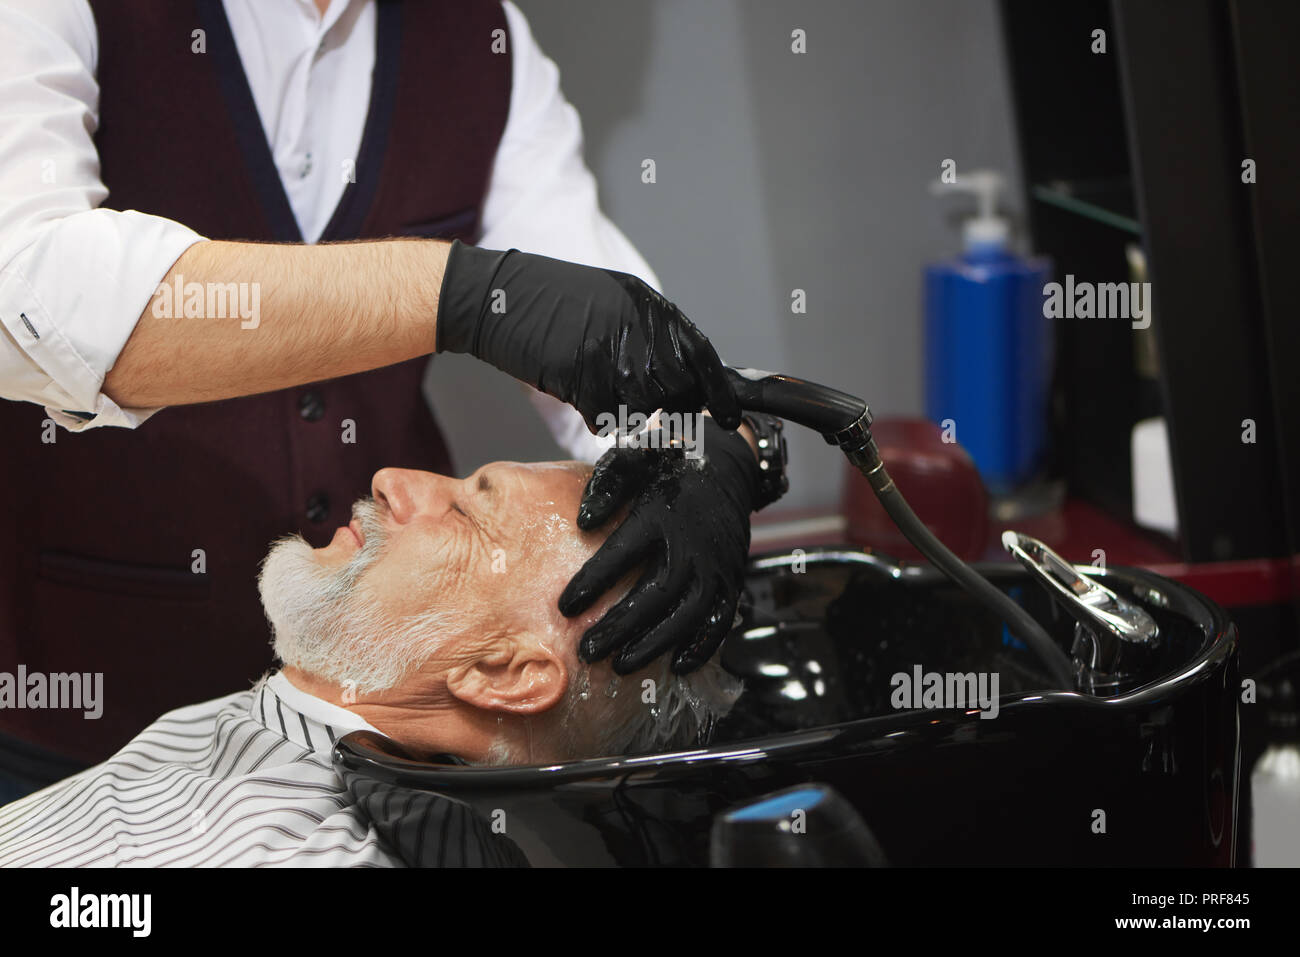 Side view of old man with grey hair holding head in black wash basin. Unrecognizable barber in black gloves washing head of his client. Concept of barbershop procedures. - Stock Image